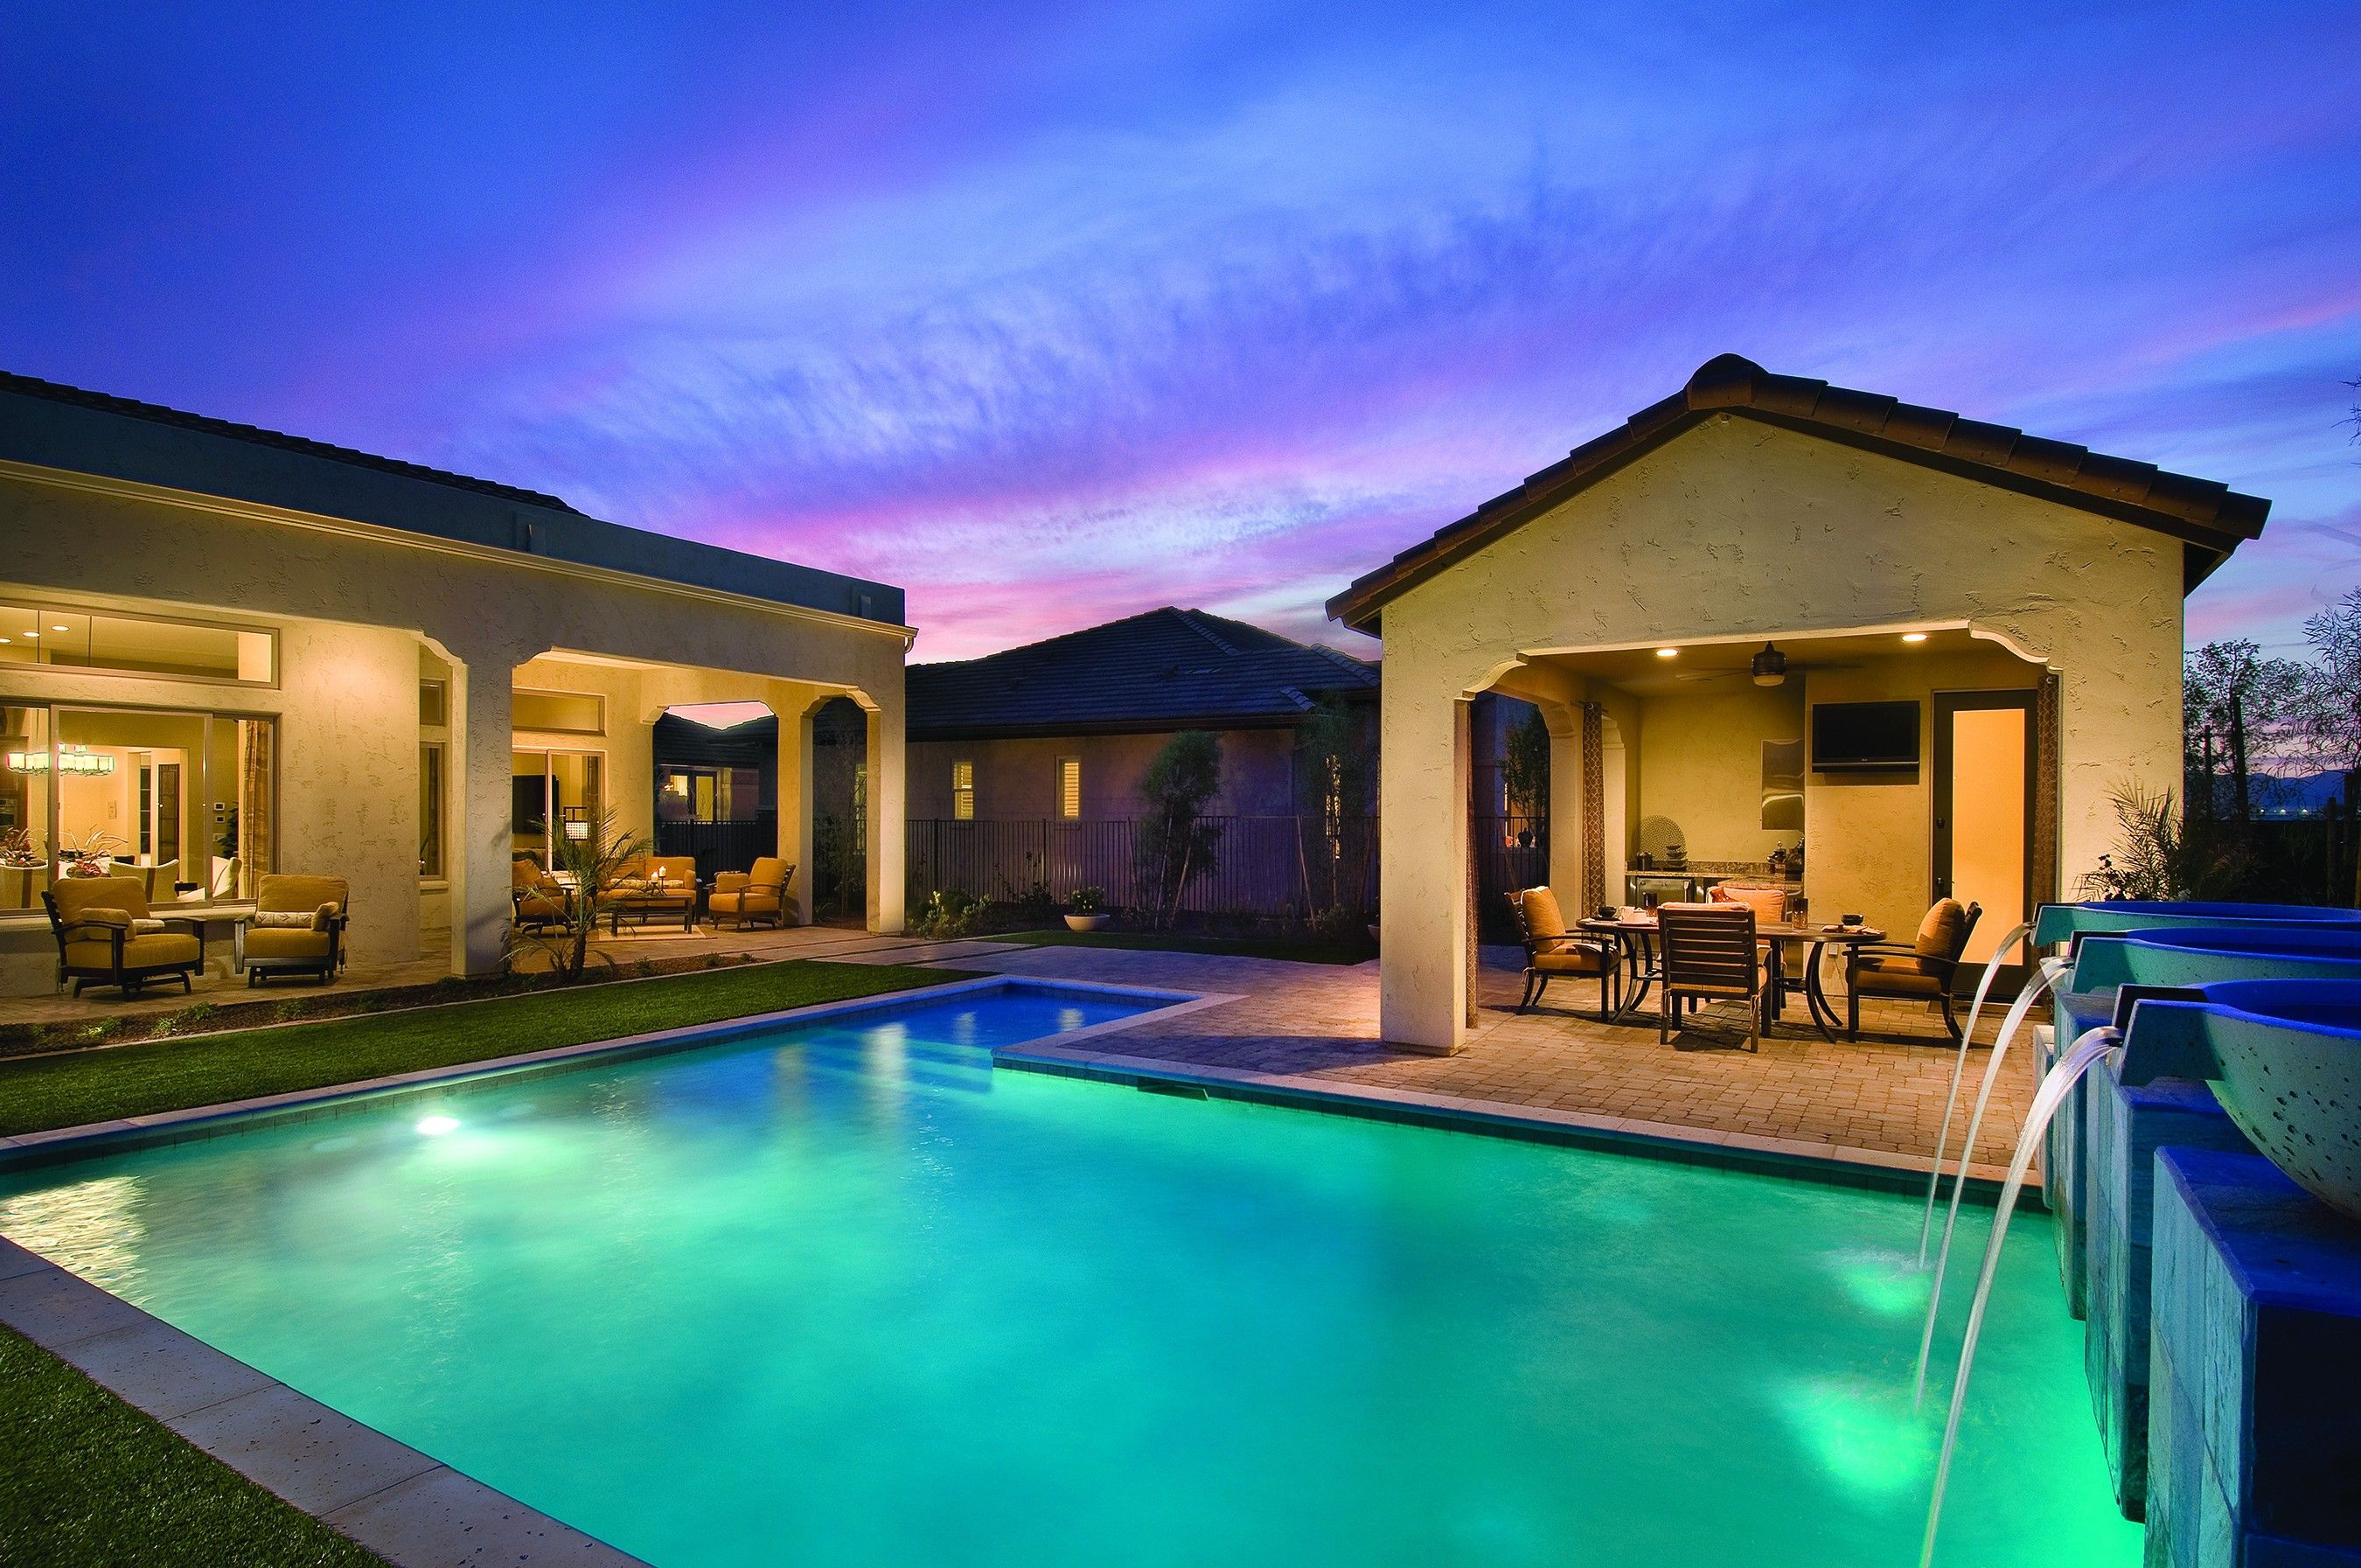 Covered patio Casita and relaxing pool Sonata model home at